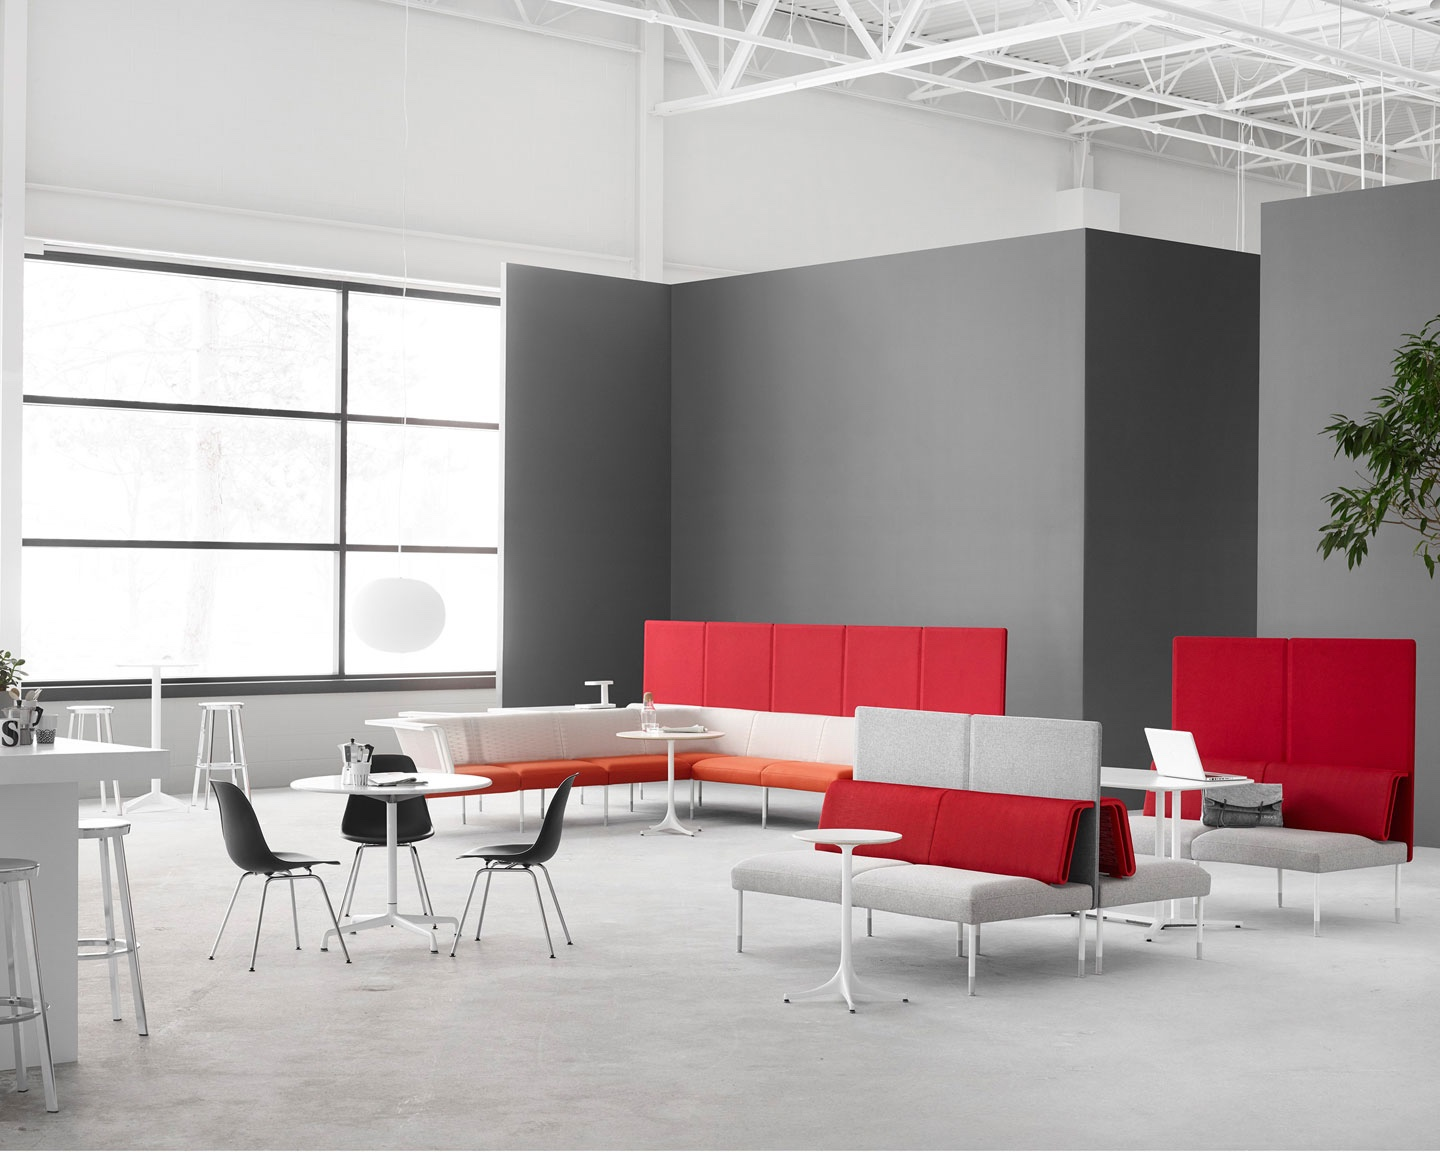 The Plaza concept by Herman Miller offers a smart break-out space. Furniture includes Herman Miller'sPublic Office Landscape and Nelson Pedestal Table. Image© 2016 Herman Miller, Inc.